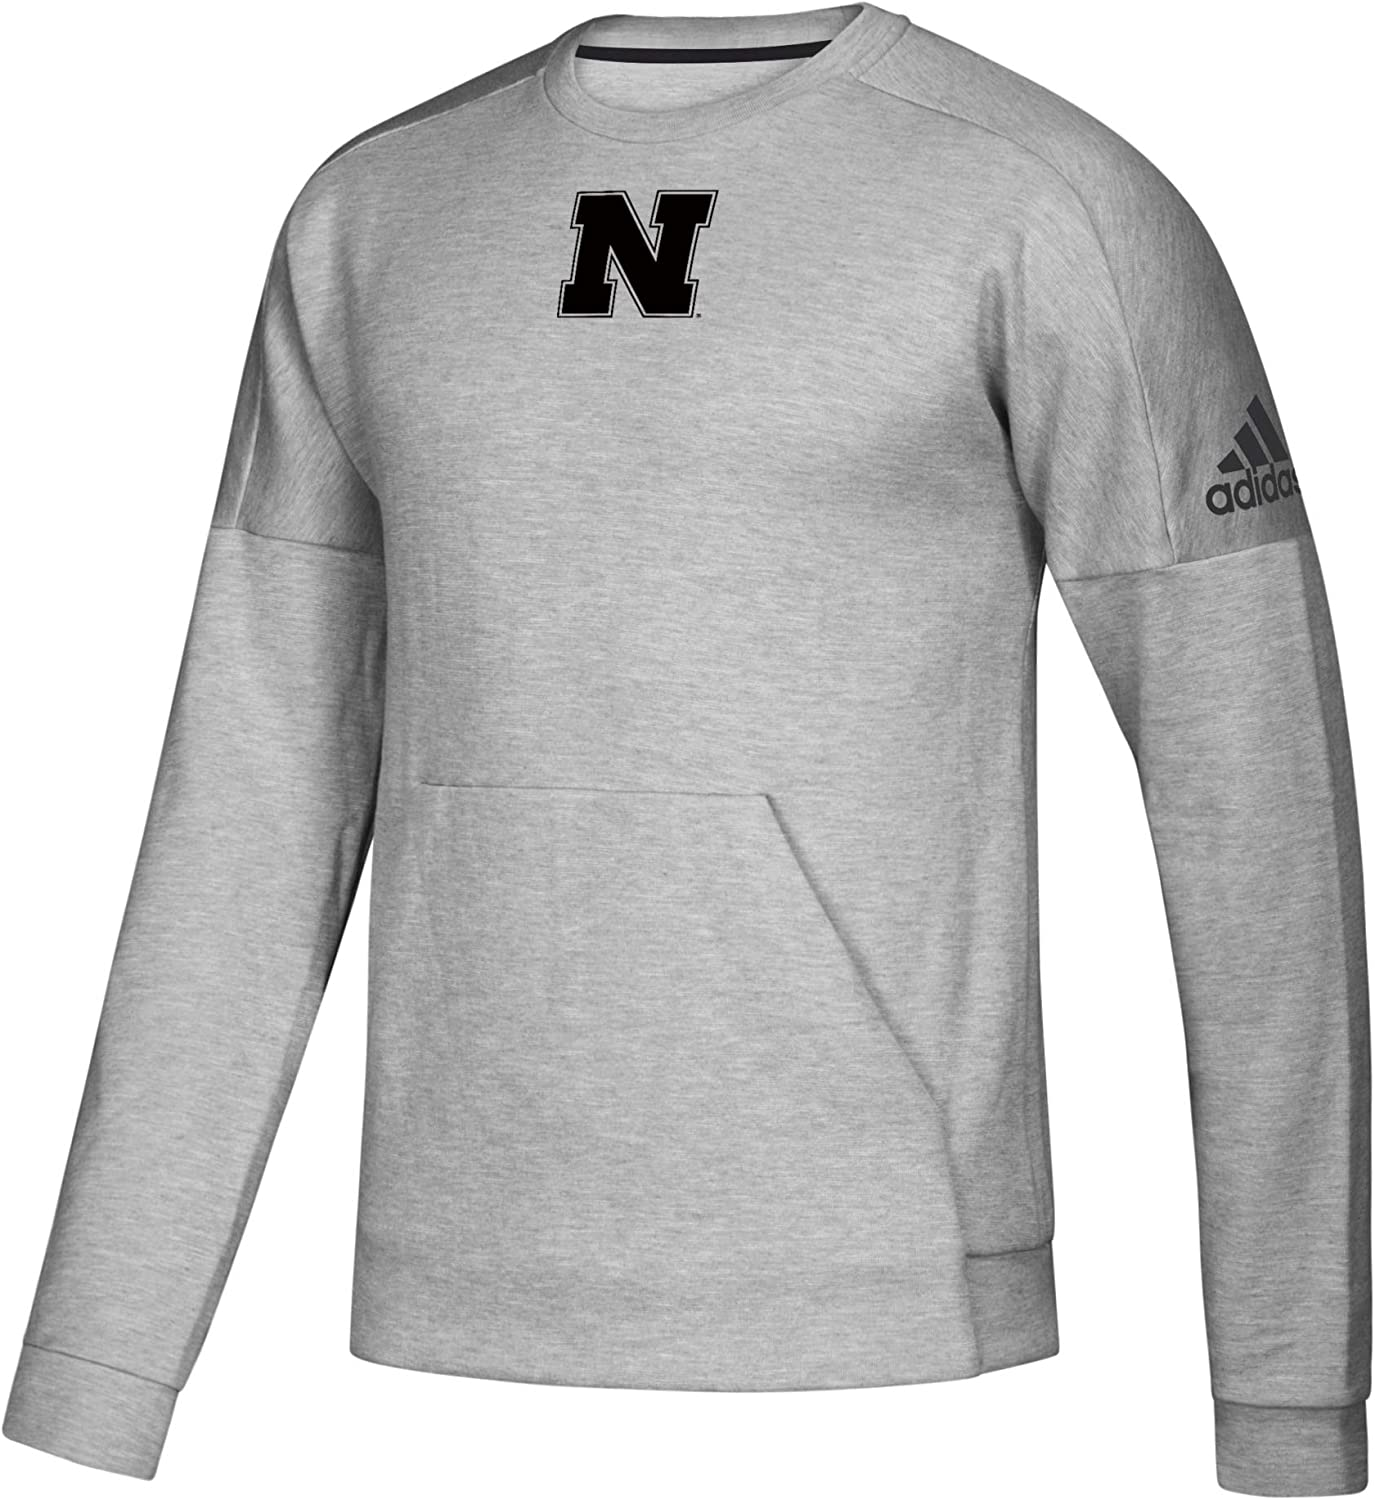 adidas NCAA Inventory cleanup selling sale Mens Fleece Pullover Quantity limited